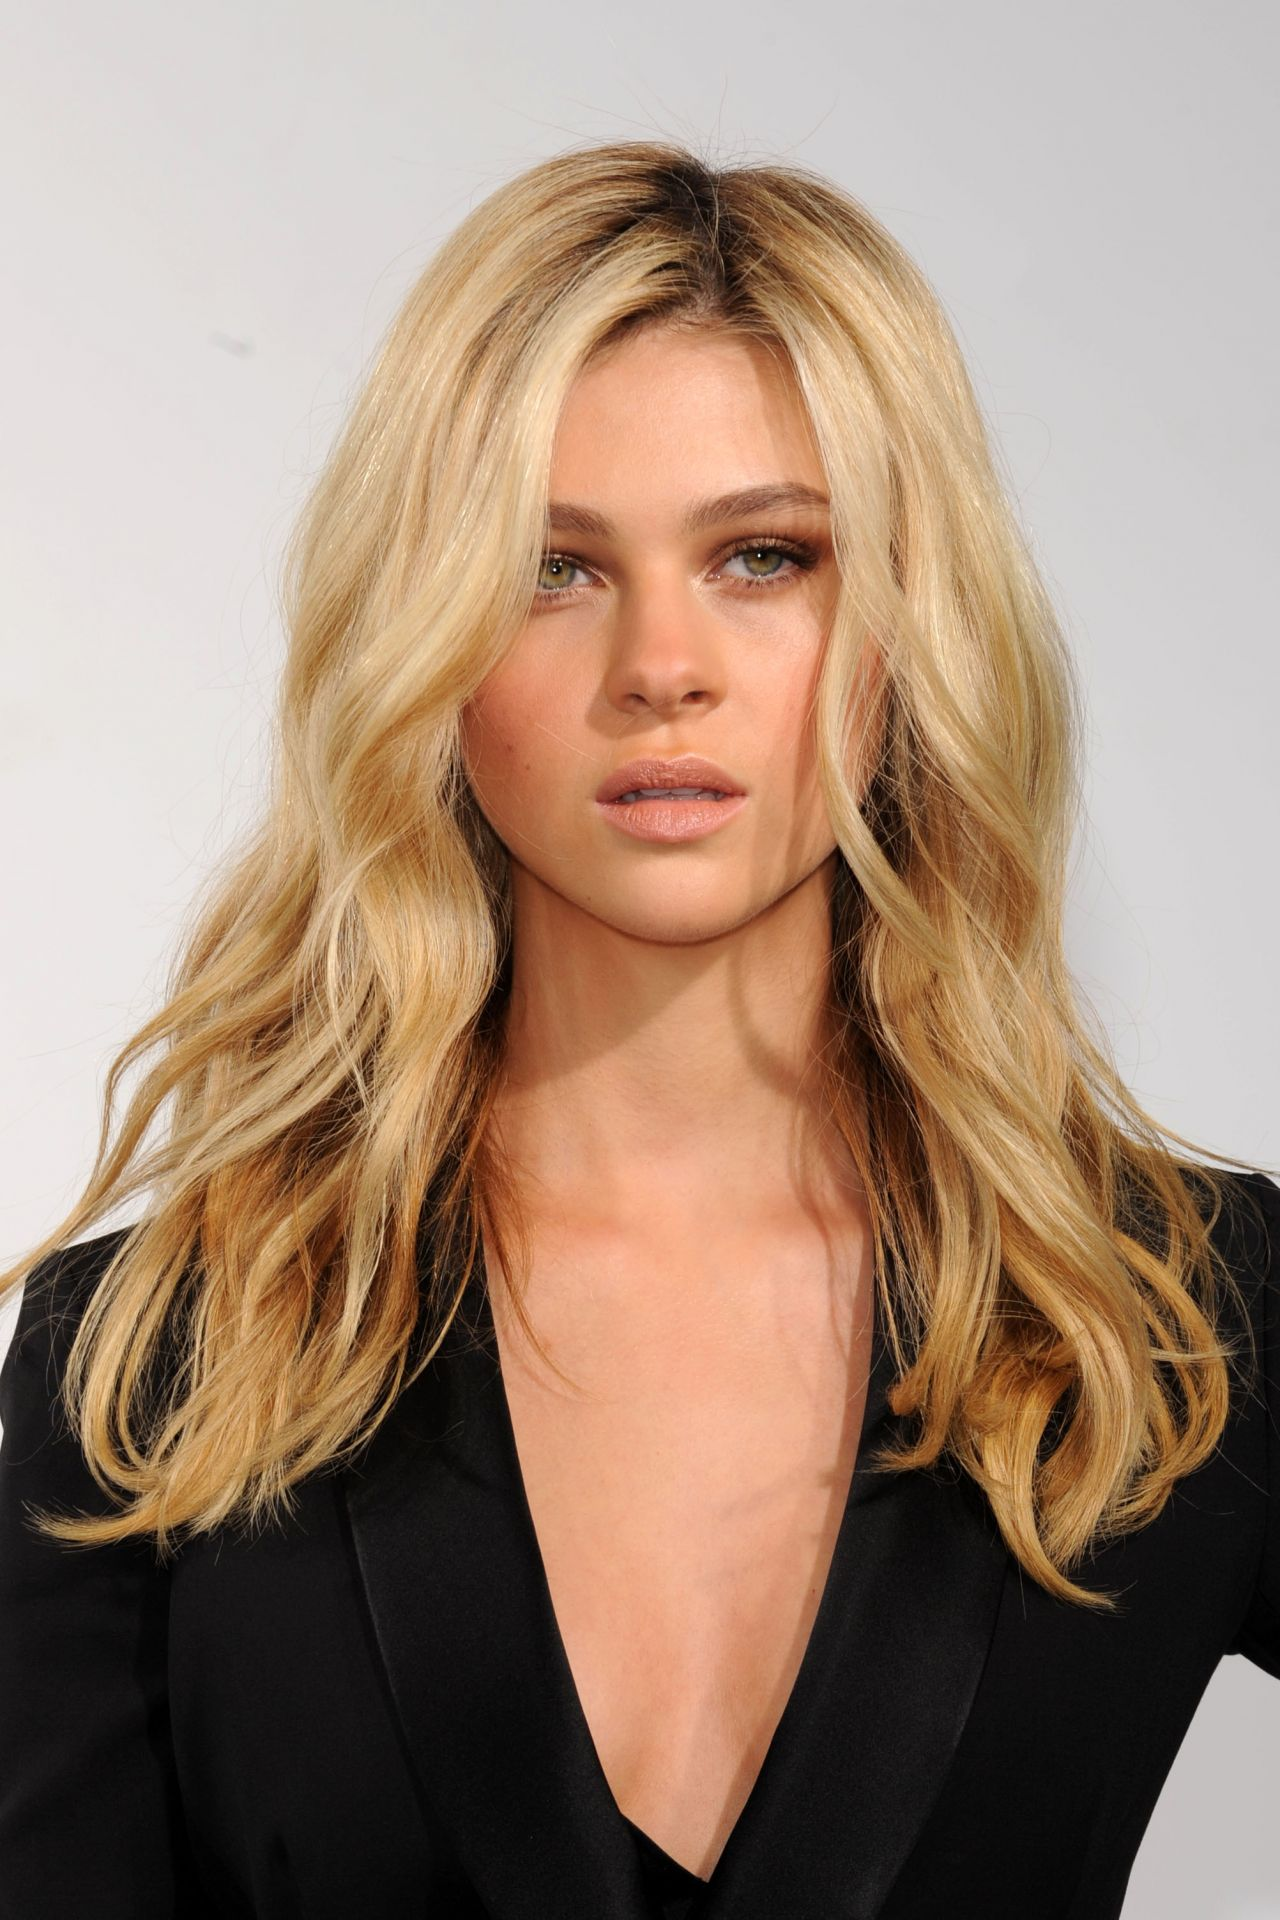 Nicola Peltz - Dior Cruise 2015 Fashion Show - May 2014-2788